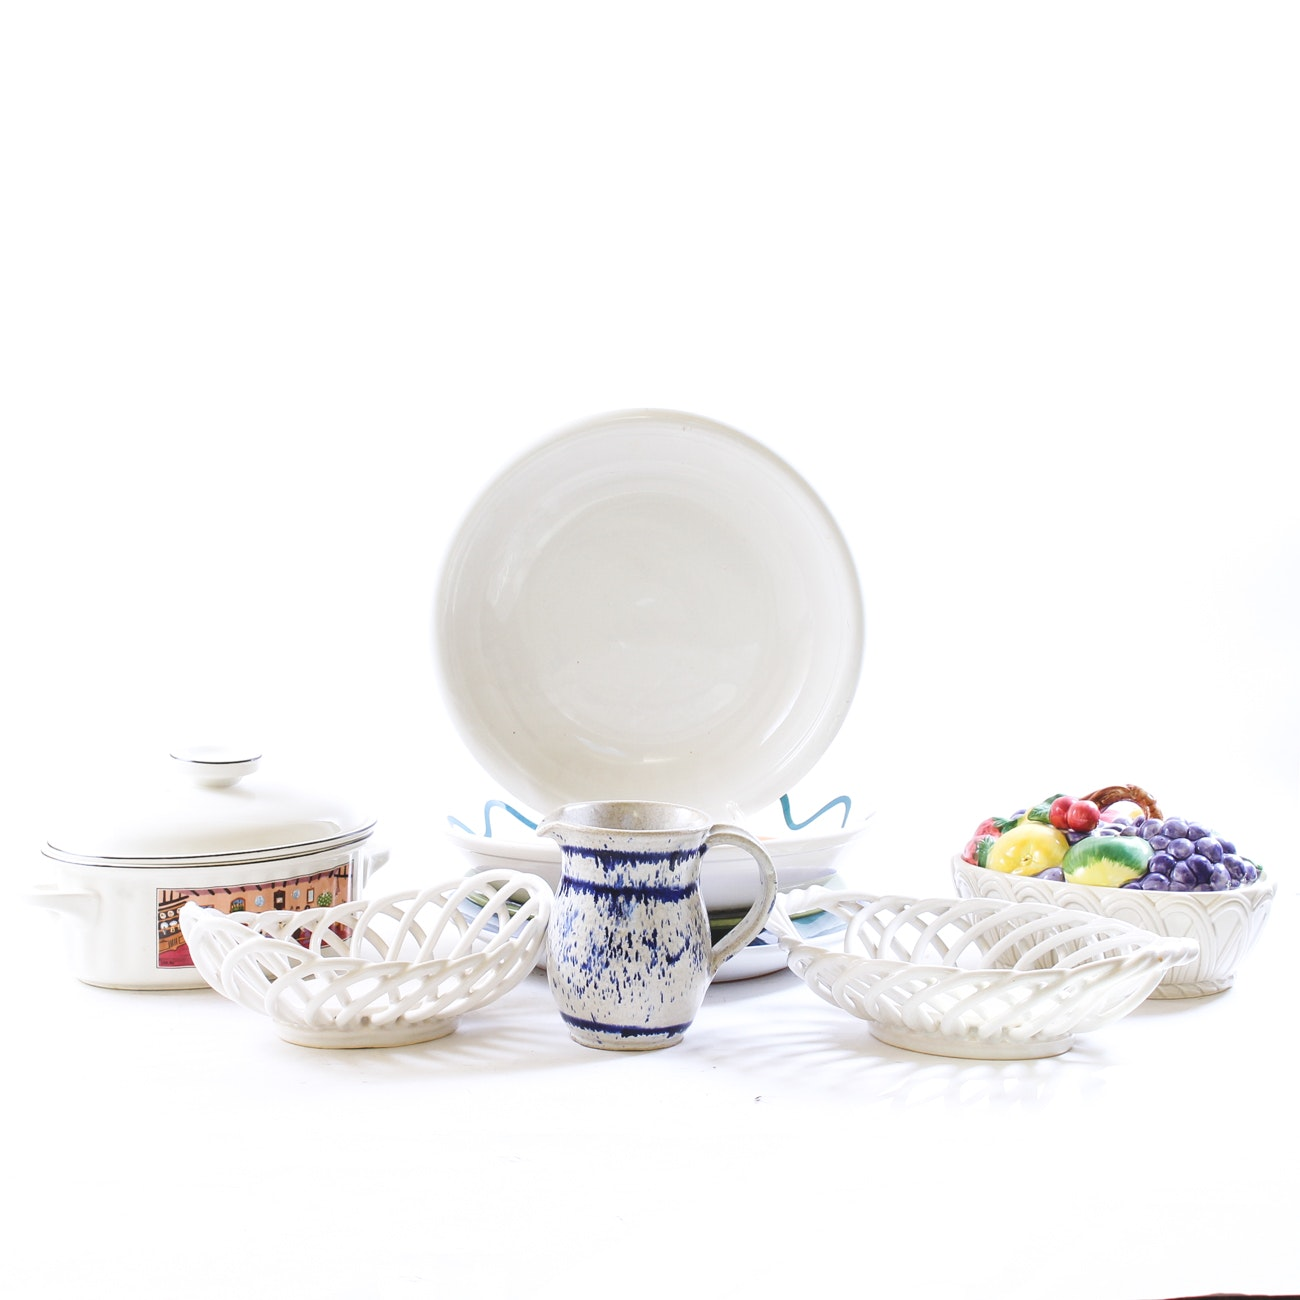 Pottery and Ceramic Serveware, Including Dansk, Villeroy and Boch, and Caleca